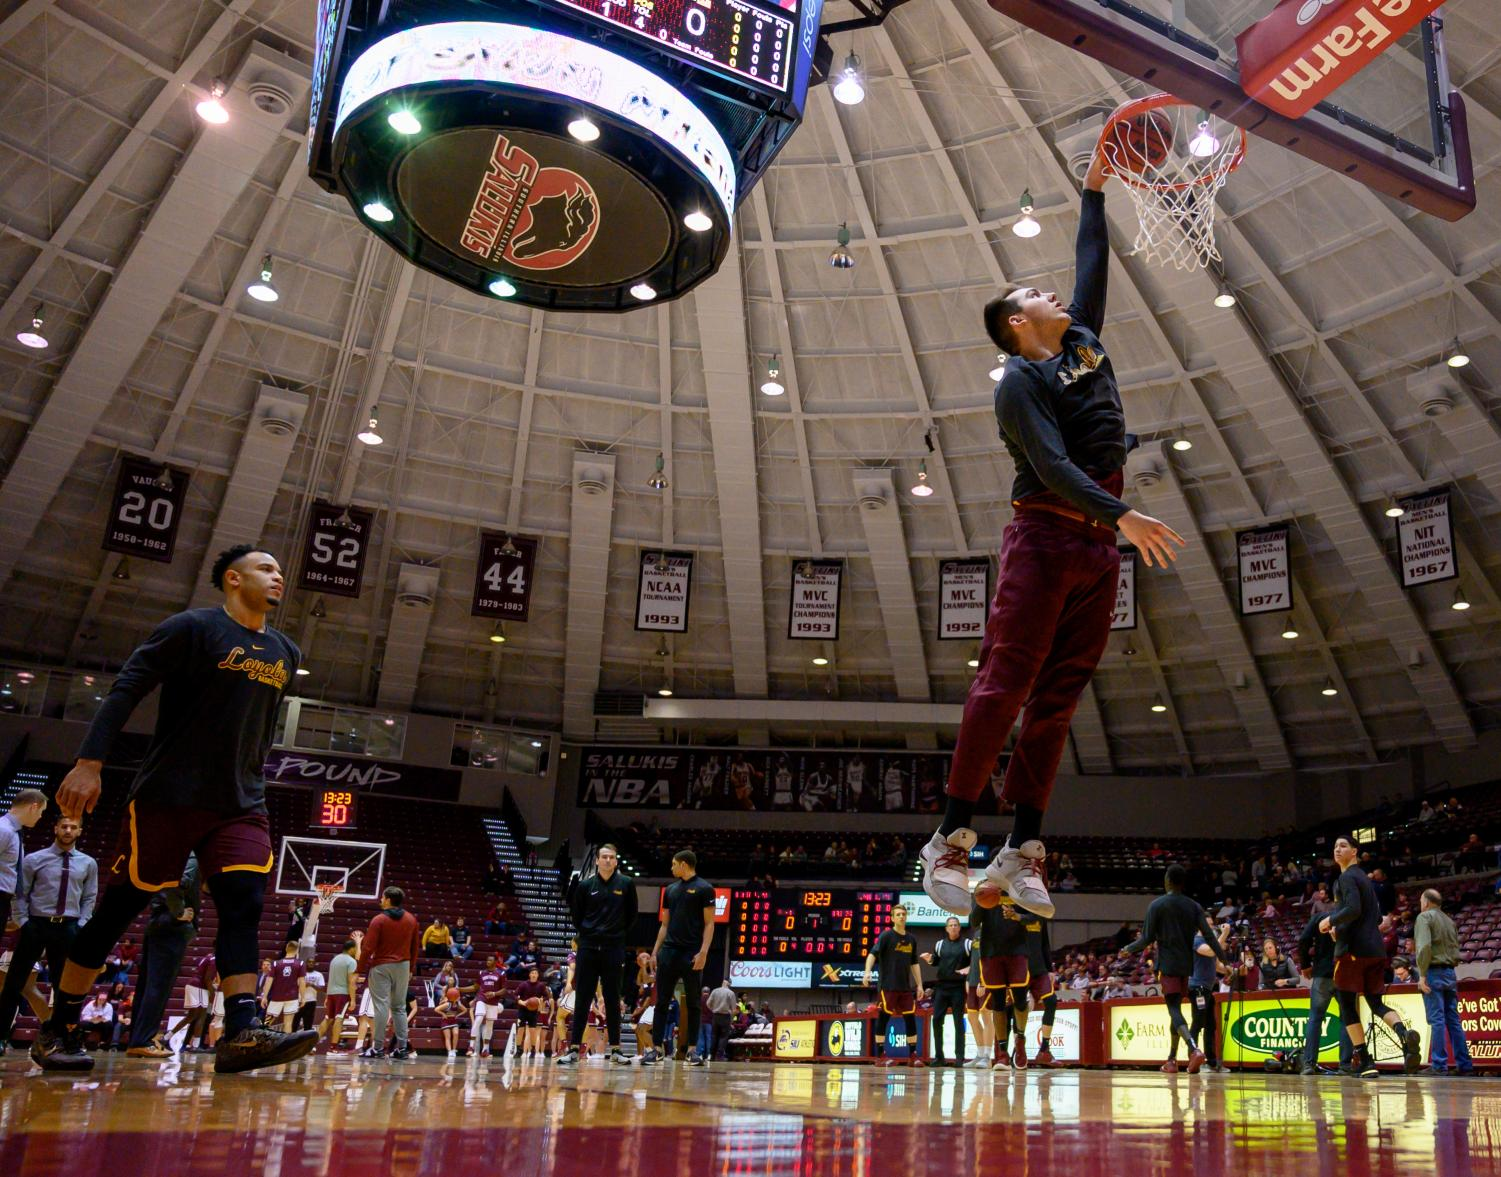 Loyola+Ramblers+center+Cameron+Krutwig+goes+for+a+basket+on+Sunday%2C+Feb.+24%2C+2019%2C+before+a+matchup+between+the+Southern+Illinois+Salukis+and+the+Loyola+Ramblers+at+SIU+Arena.